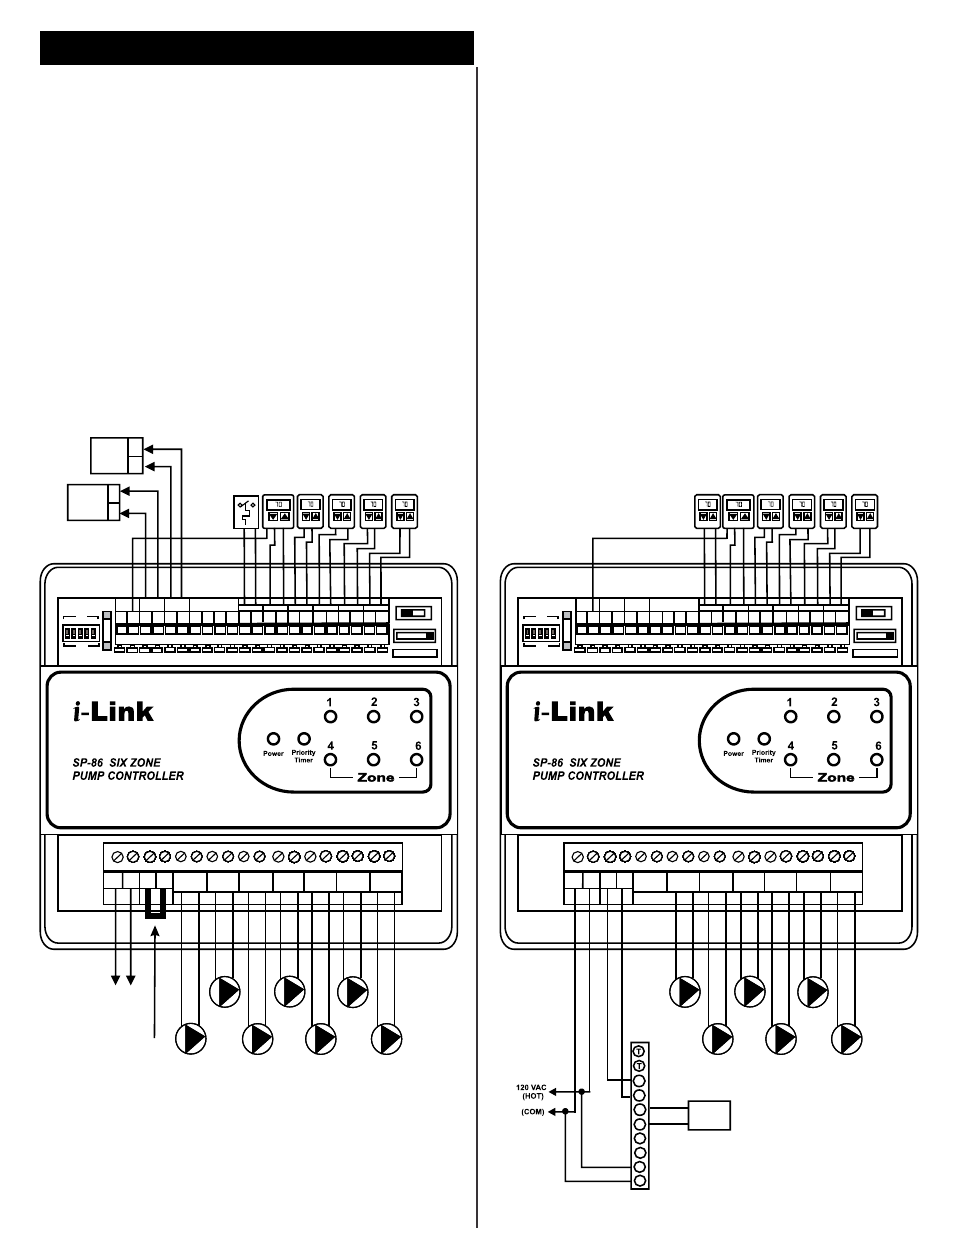 operation and typical wiring diagrams jumper placement figure 2 rh manualsdir com